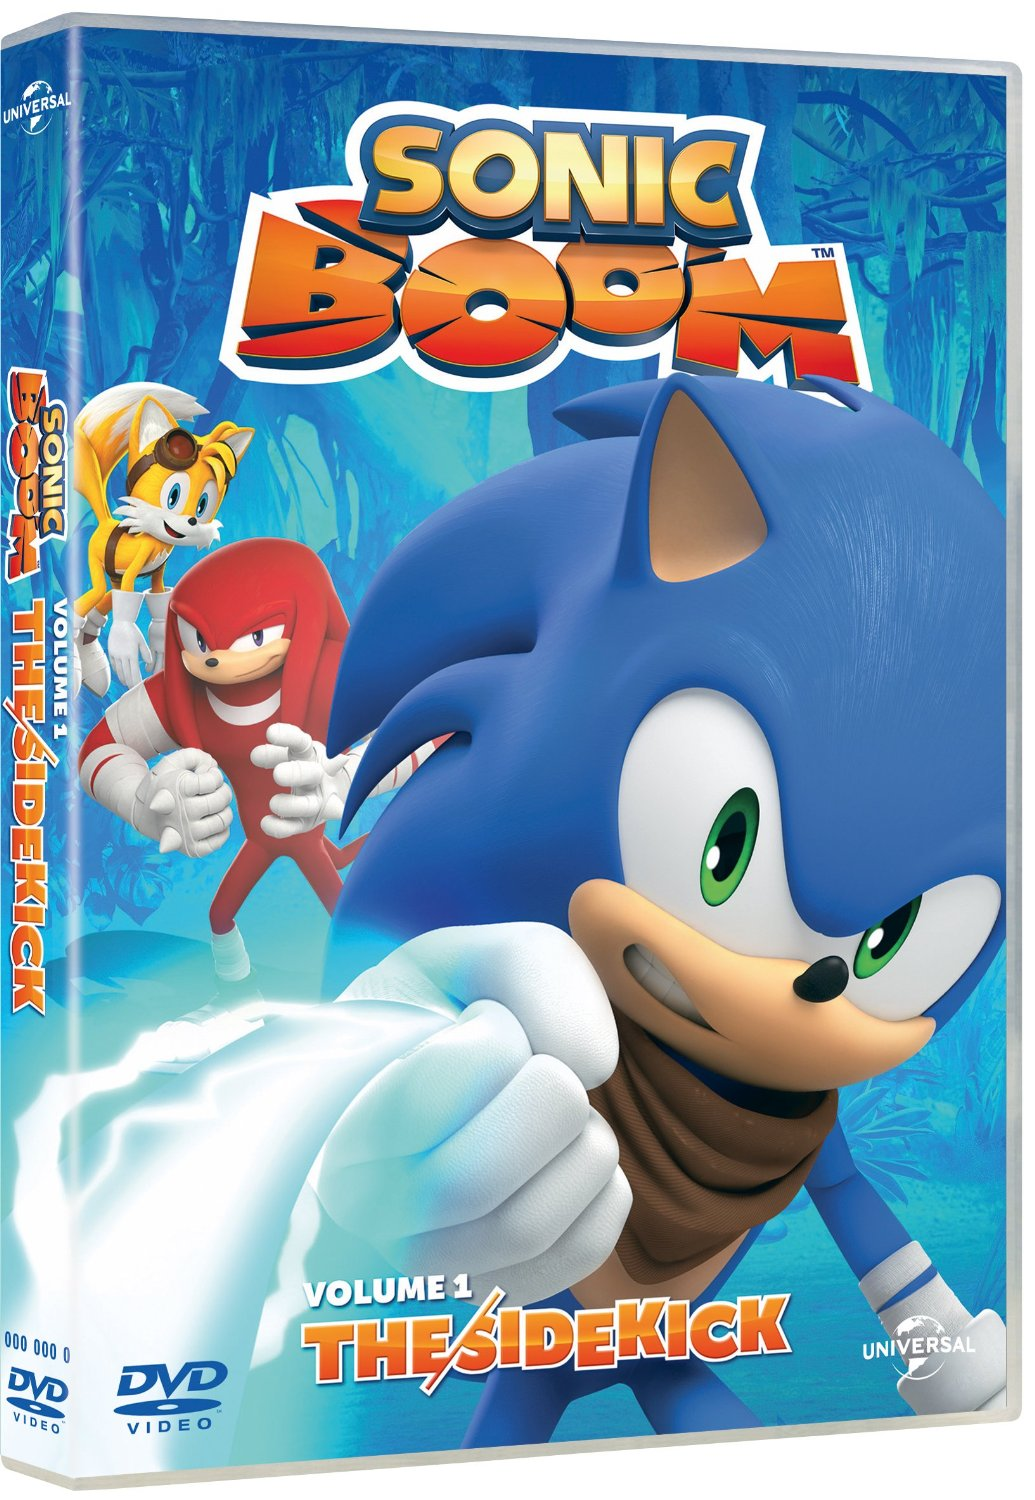 Sonic Boom DVD Vol 1 Hits the U.K. in February UPDATE